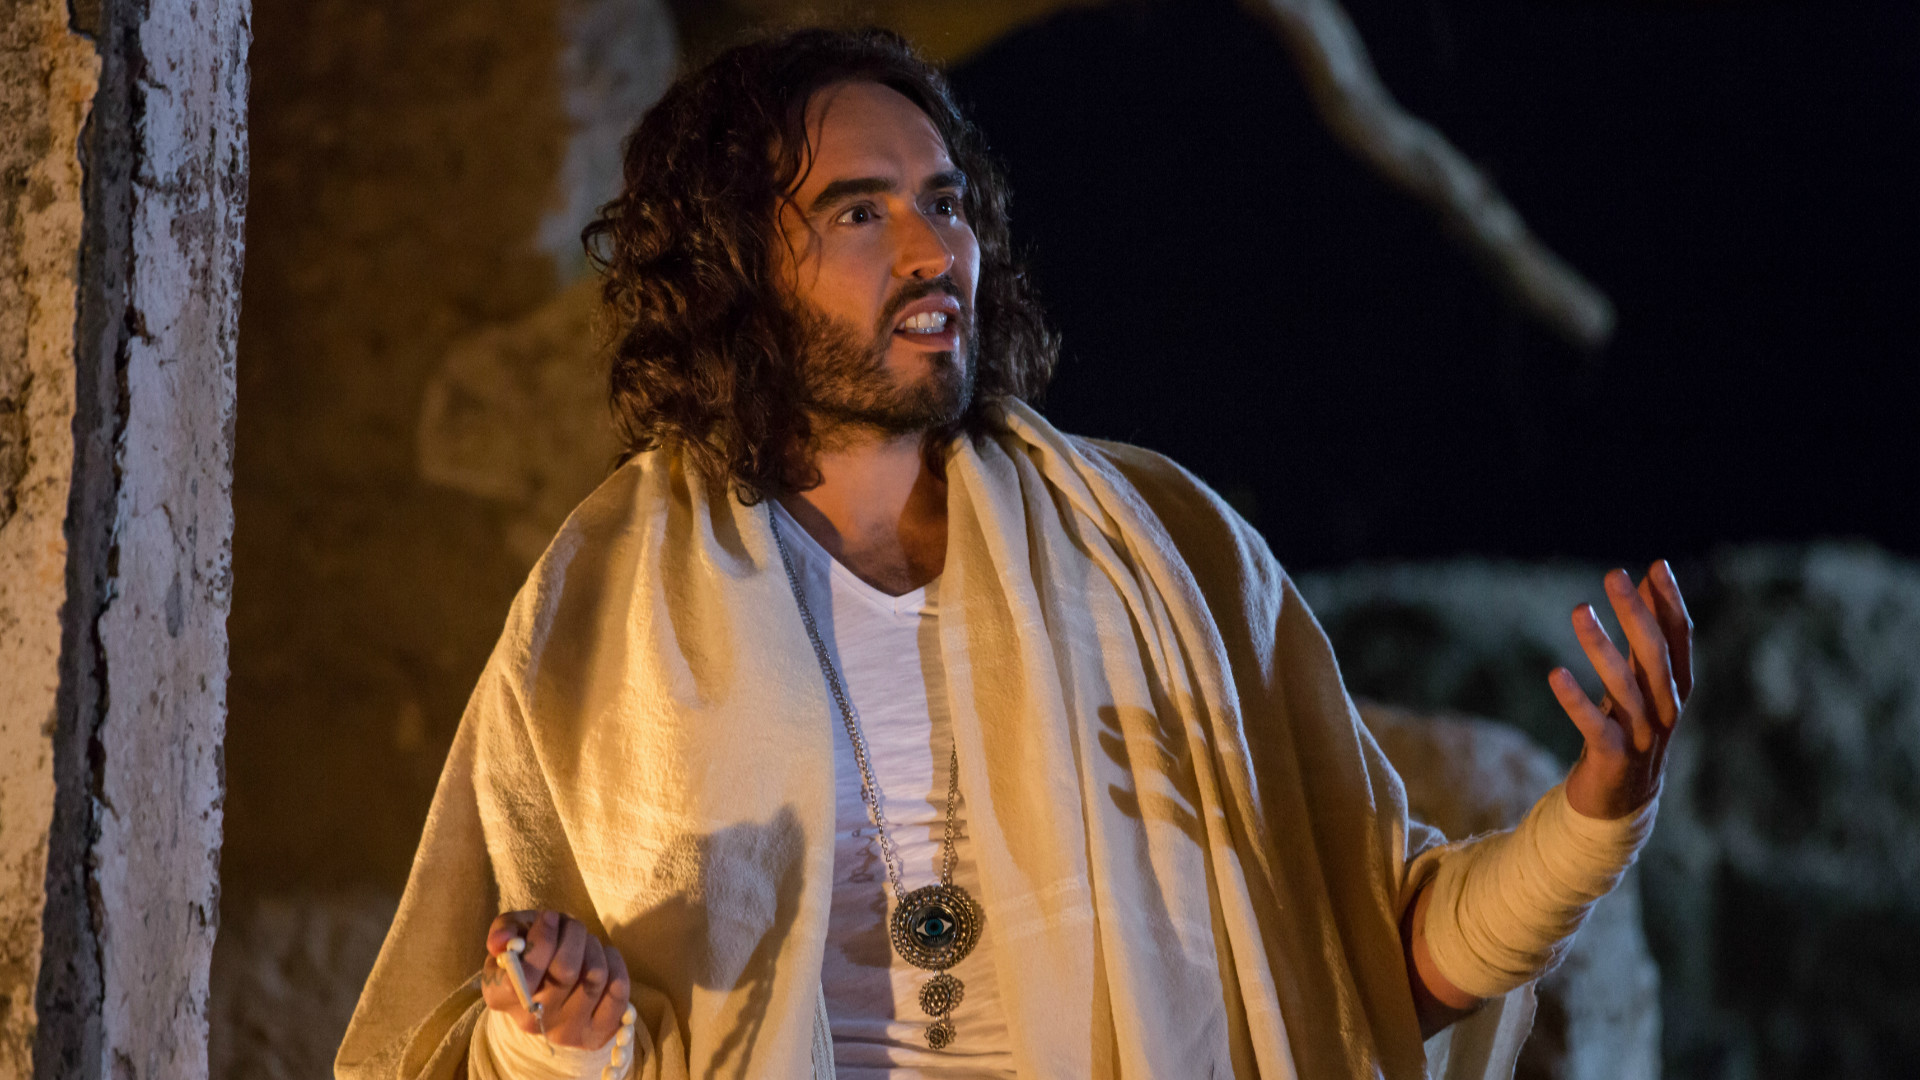 Russell Brand plays 'The Spirt' in Army of One